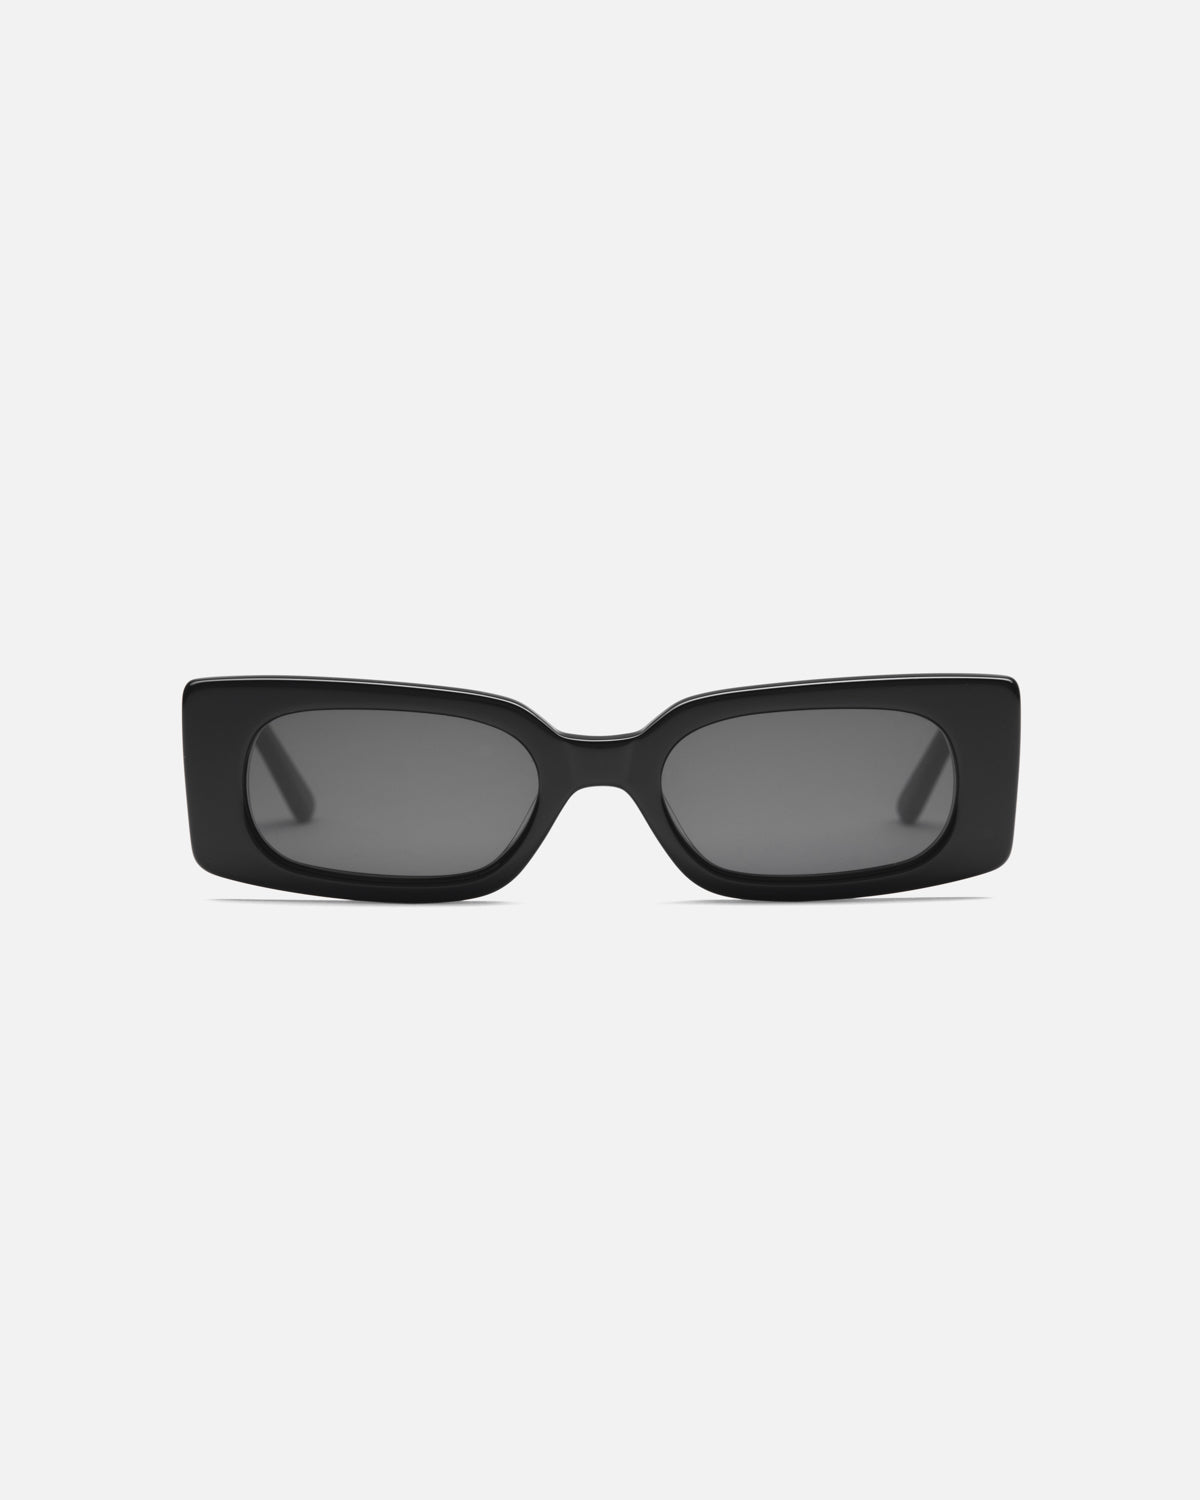 Lu Goldie Salome rectangle Sunglasses in black acetate with black lenses, front